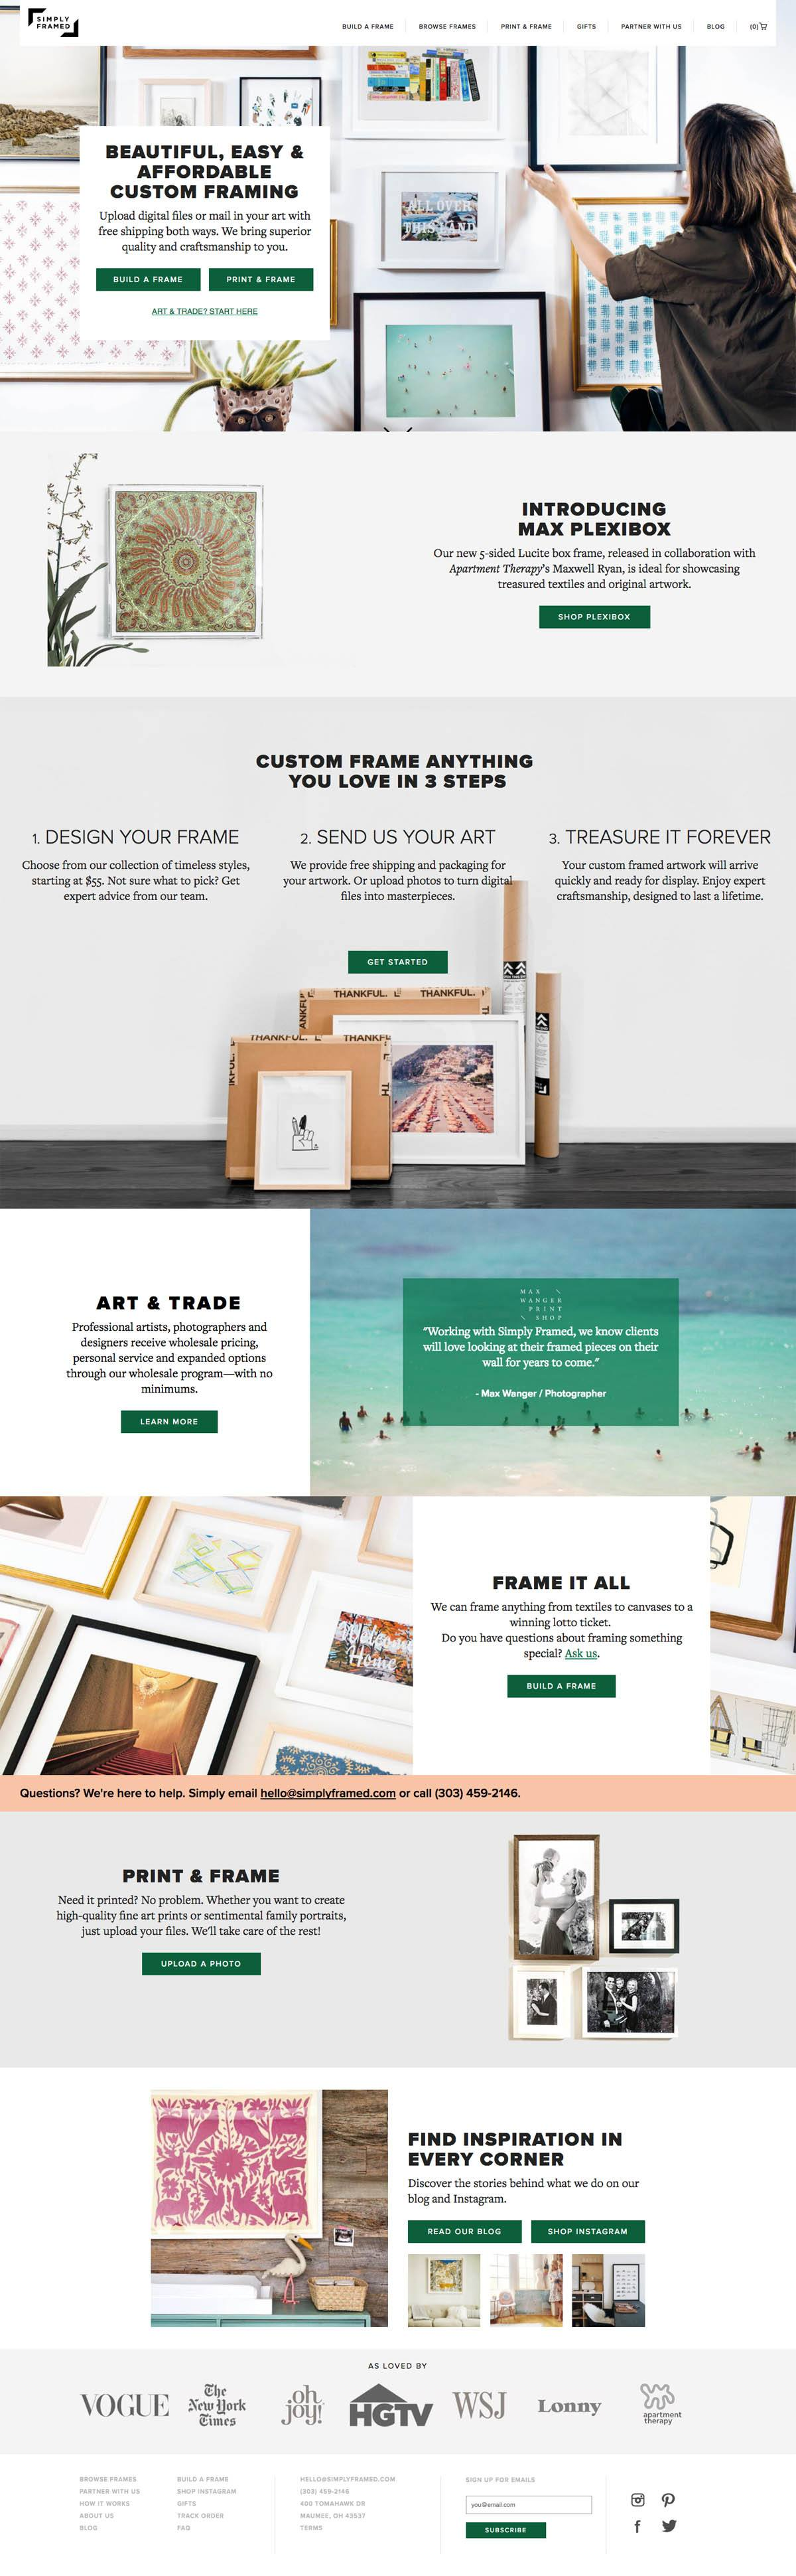 eCommerce website: Simply Framed